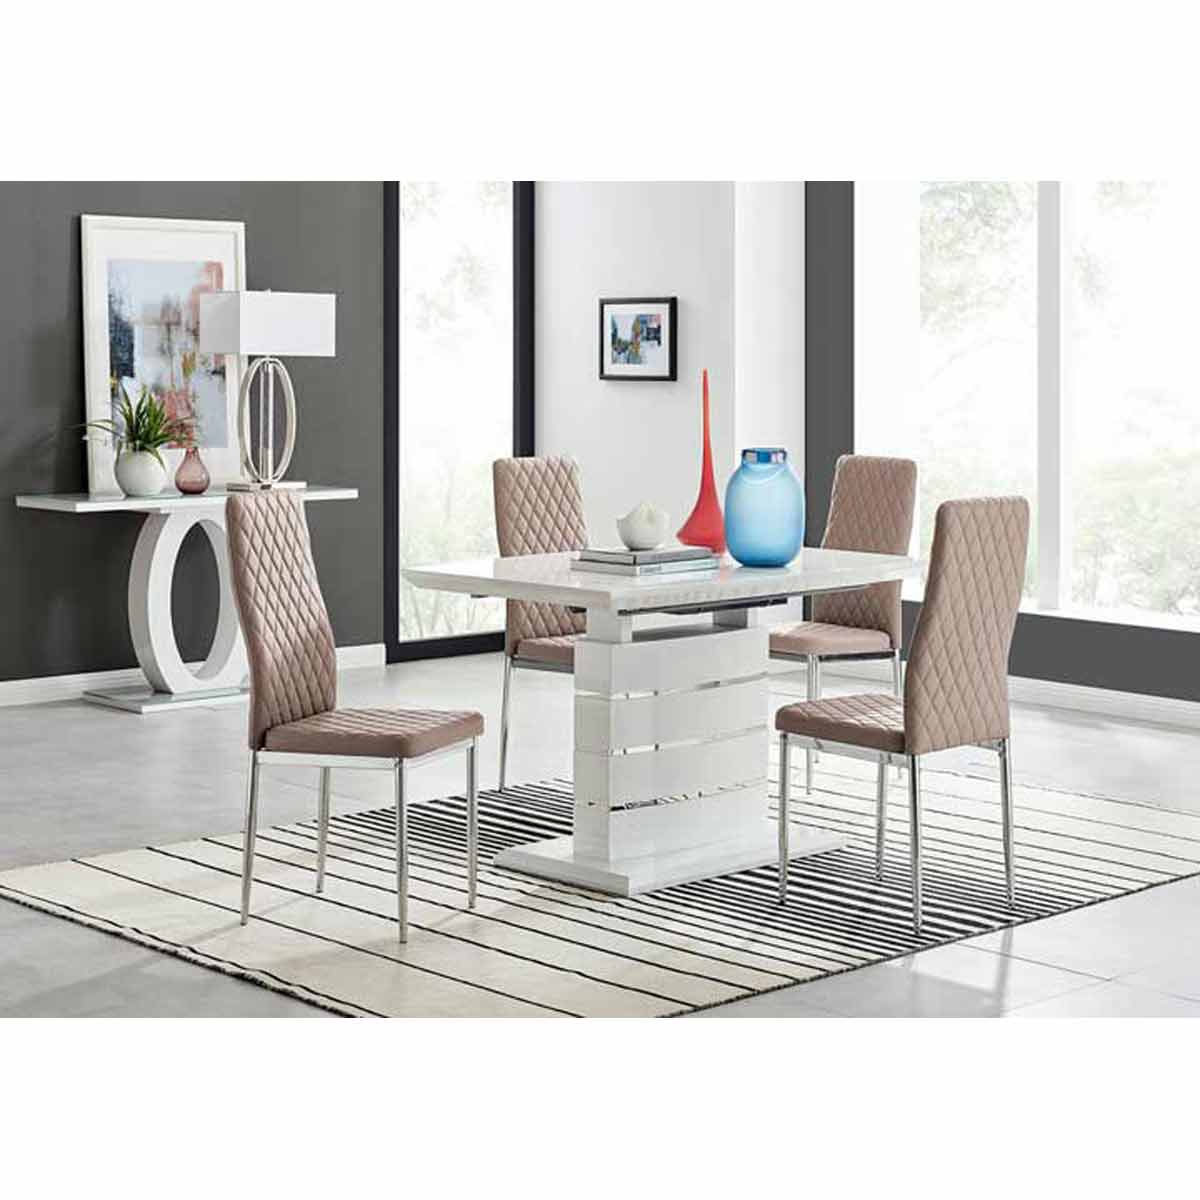 Furniture Box Renato 120cm High Gloss Extending Dining Table and 4 Cappuccino Milan Chairs